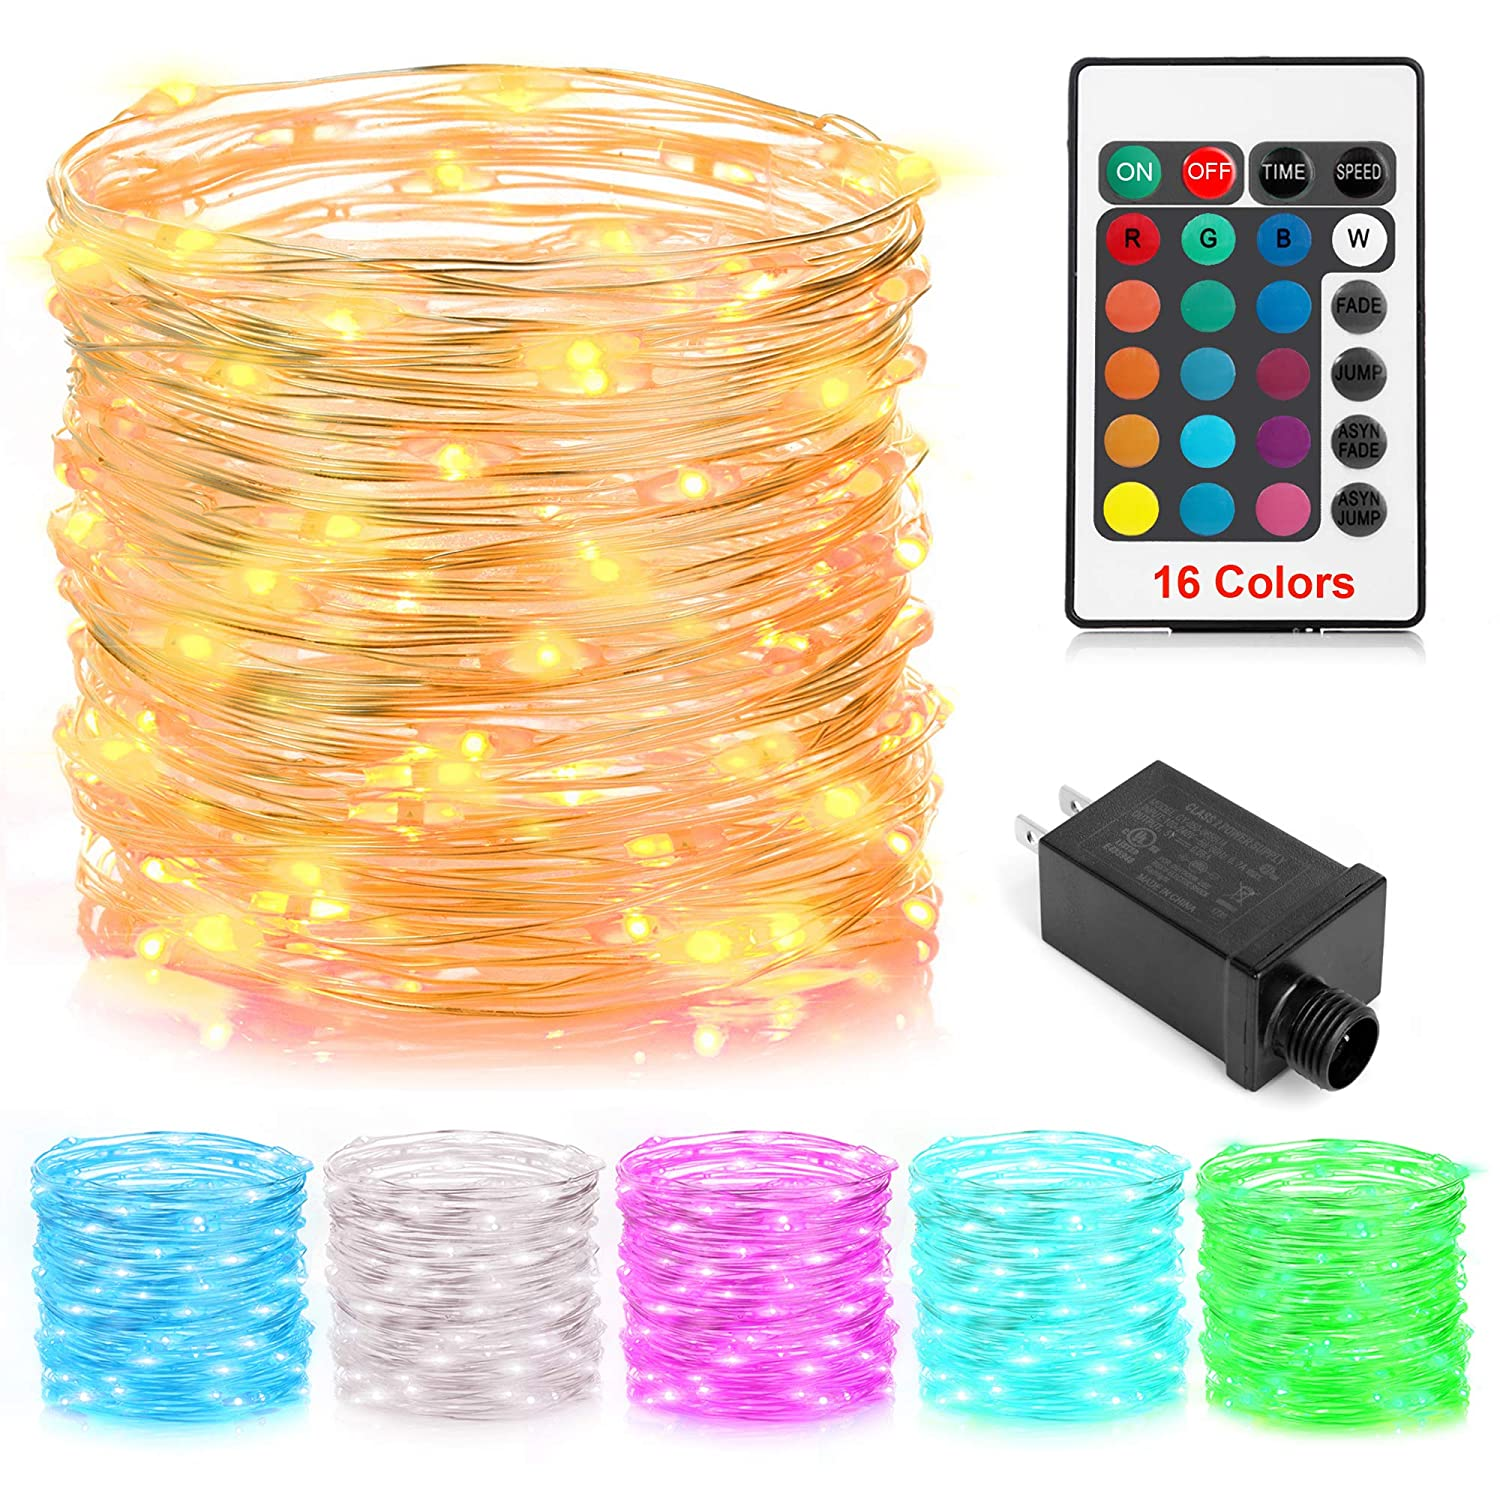 GDEALER 2 Pack Fairy Lights Fairy String Lights Battery Operated Waterproof 8 Modes 60 LED 20ft String Lights Copper Wire Firefly Lights Remote Control Christmas Decor Christmas Lights Warm White TS12